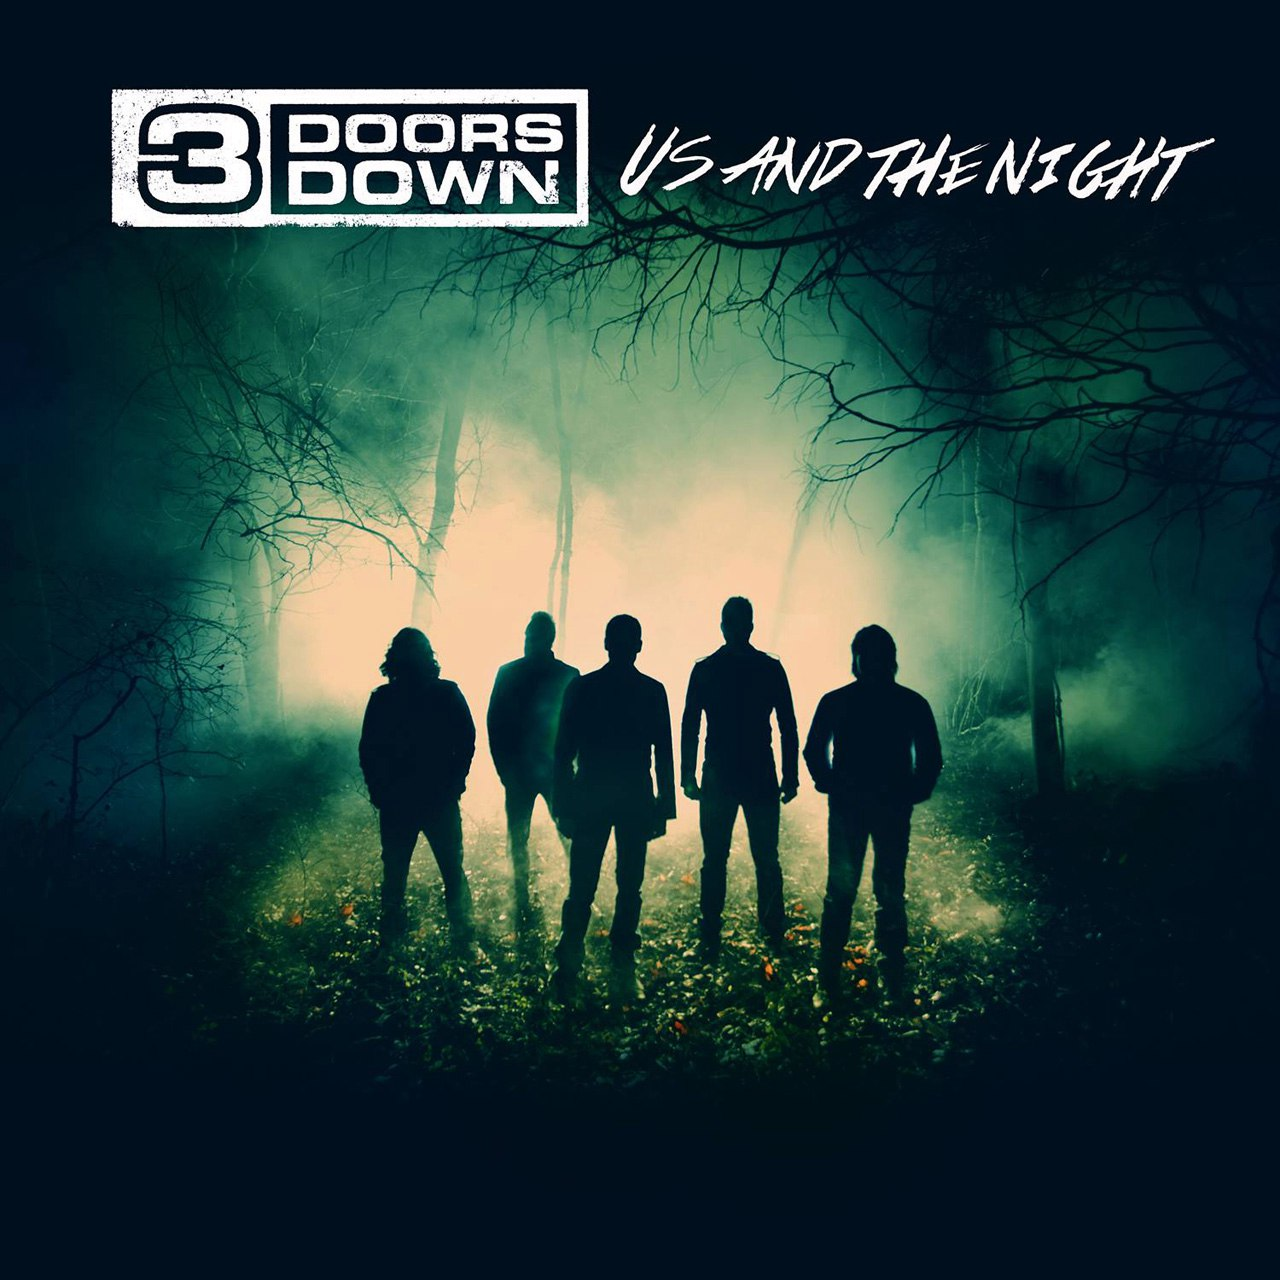 3 Doors Down - Us and the Night (2016)